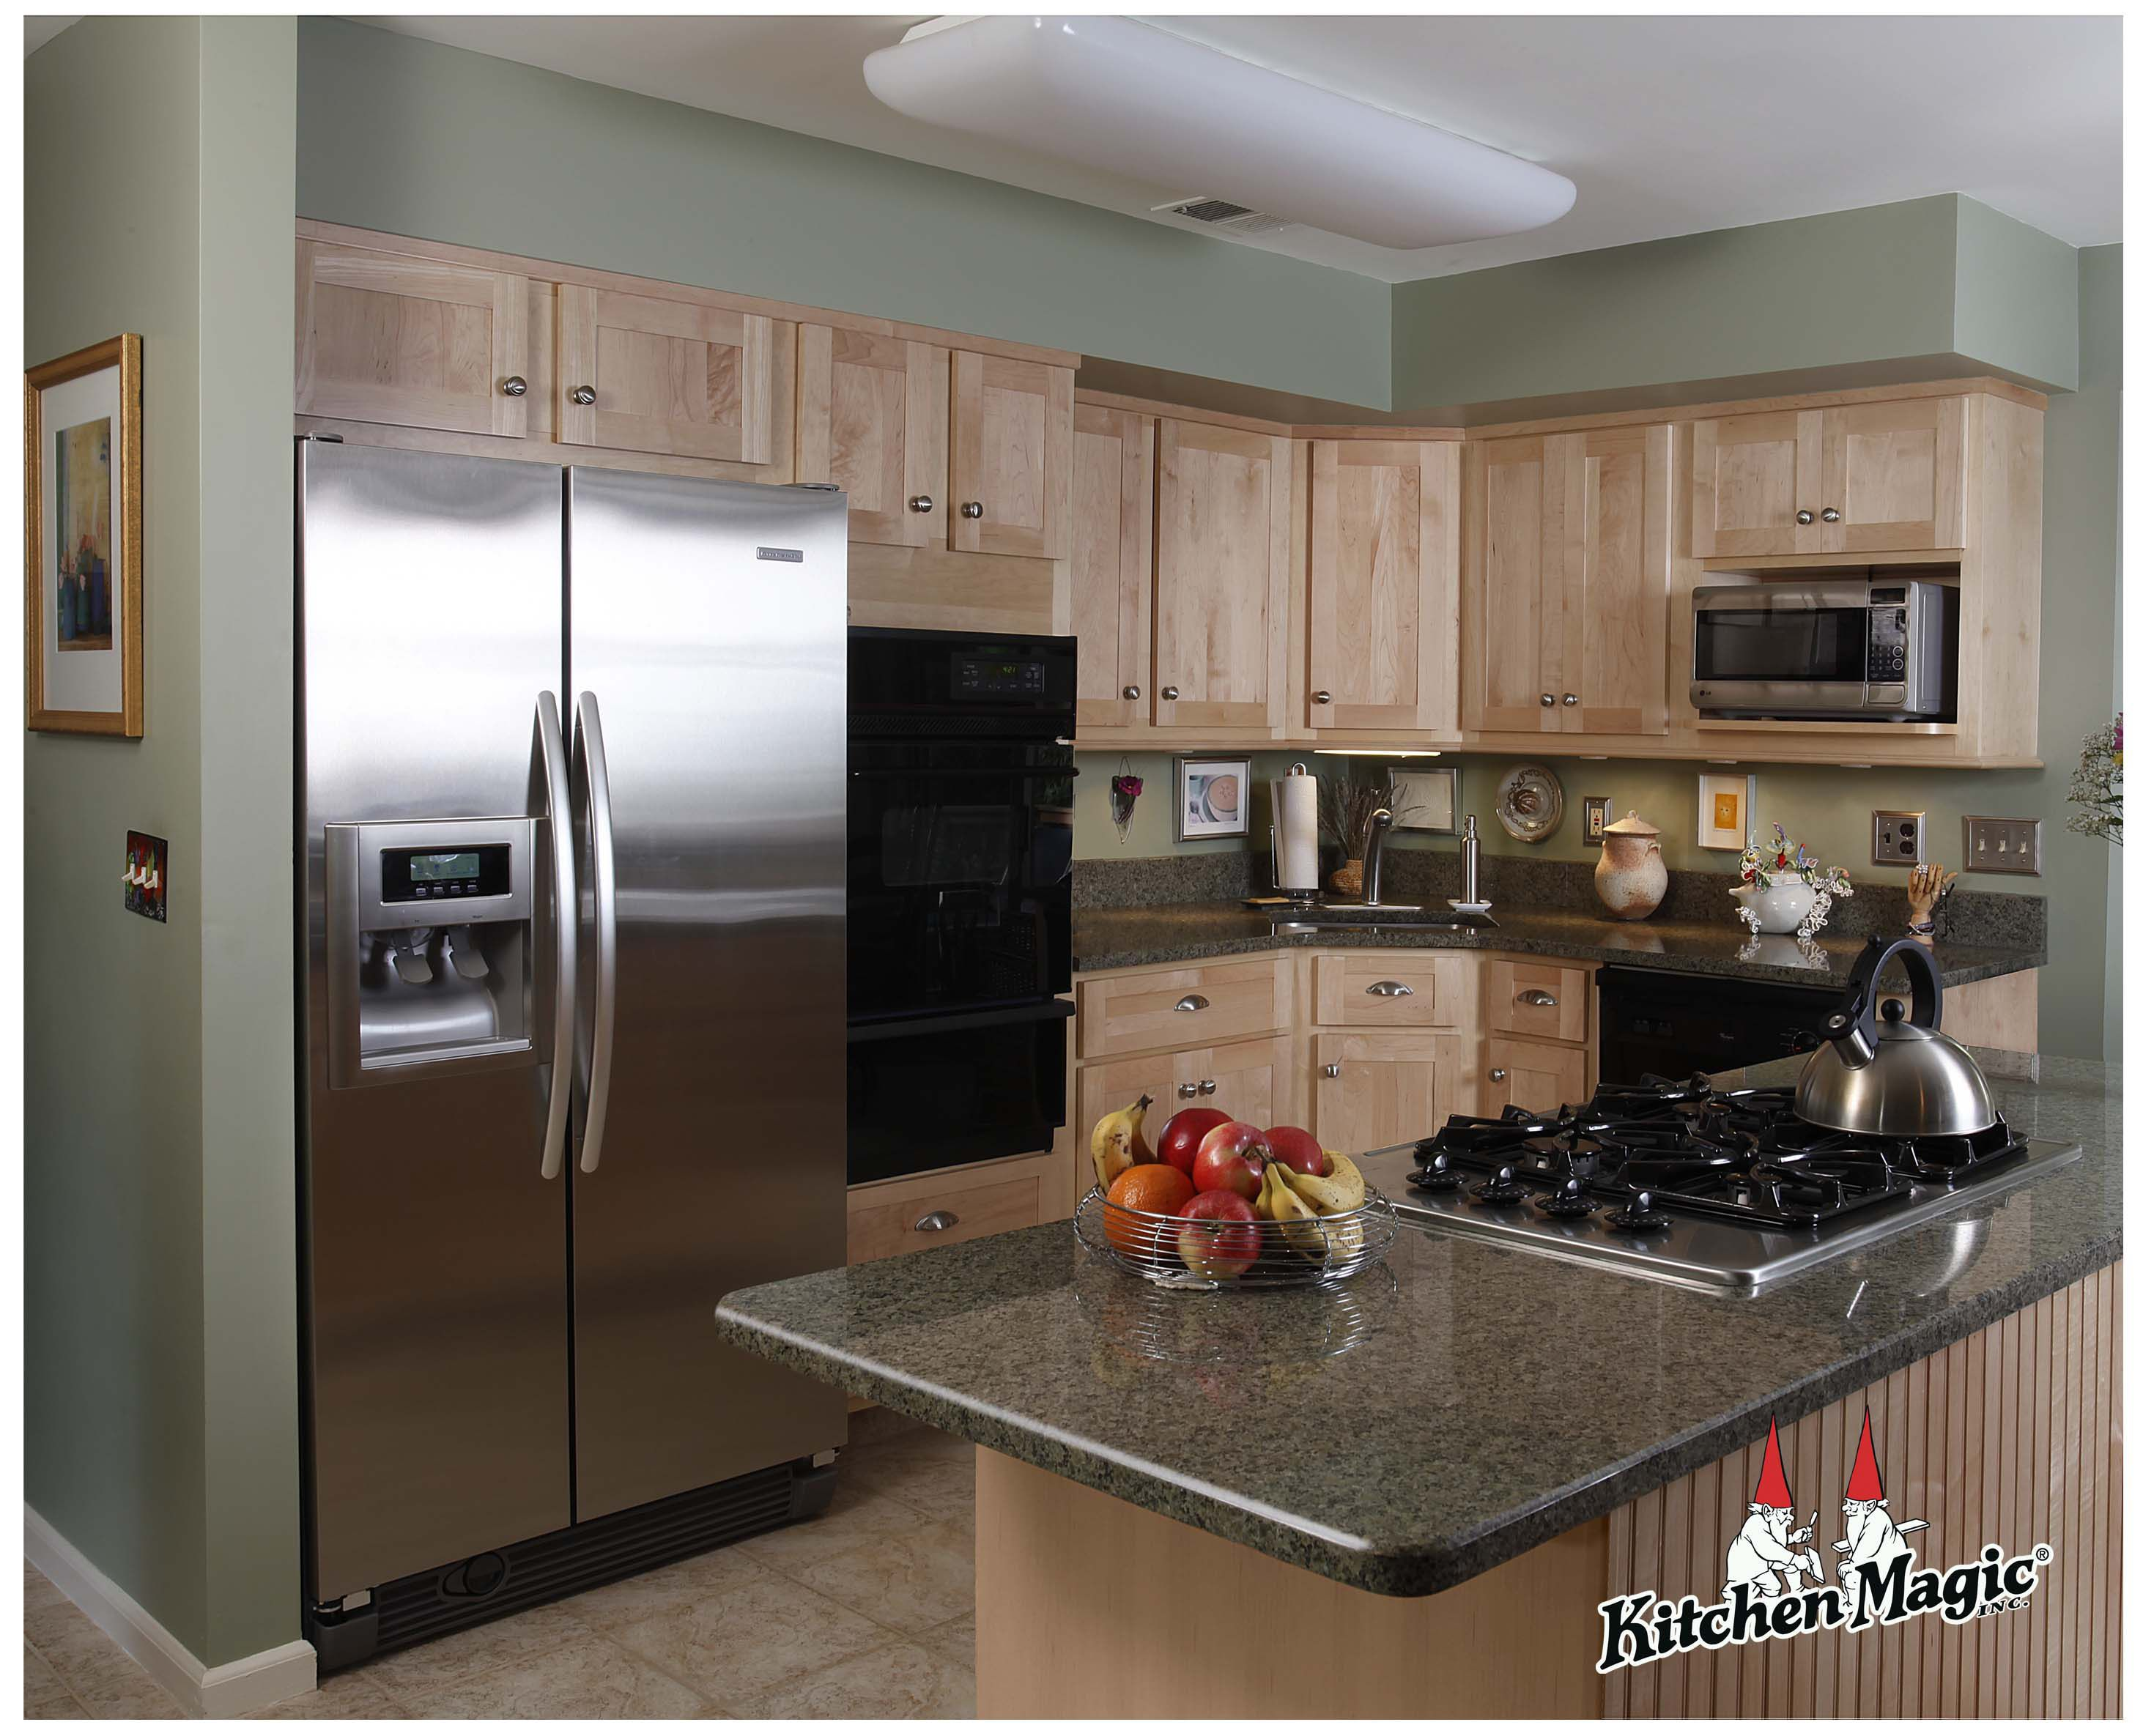 Maple Kitchen Cabinets With Marble Countertops Natural Maple Wood Cabinets Granite Countertop